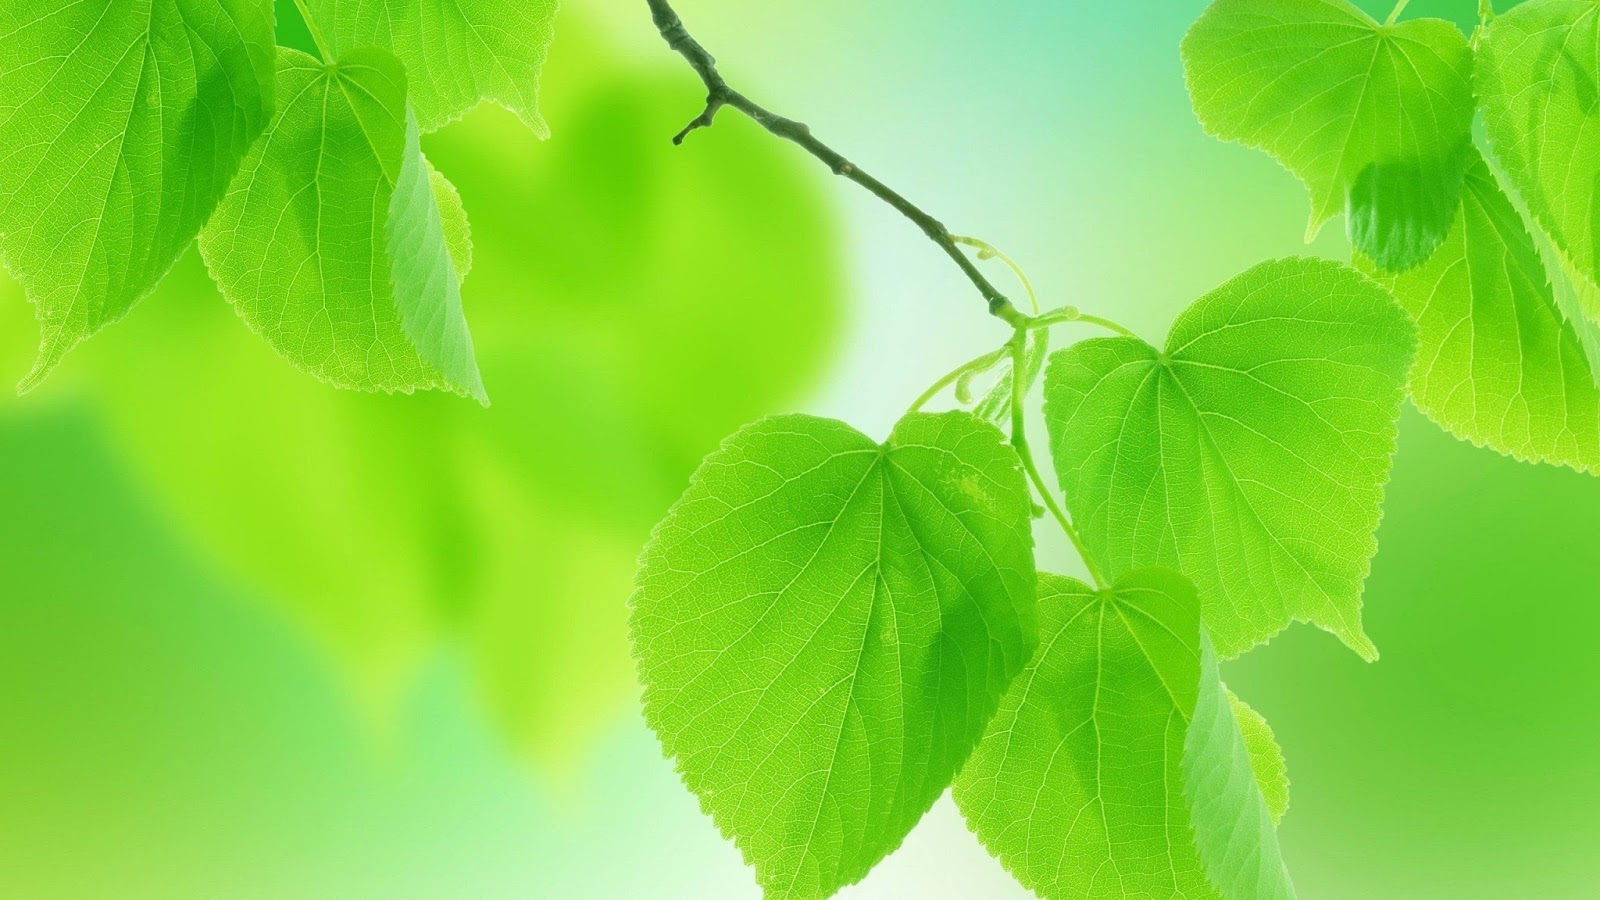 Most beautiful green hd wallpaper for iphone desktop tab and all most beautiful green leaf hd wallpaper for iphone desktop tab and all smartphone androidvallyspot voltagebd Choice Image